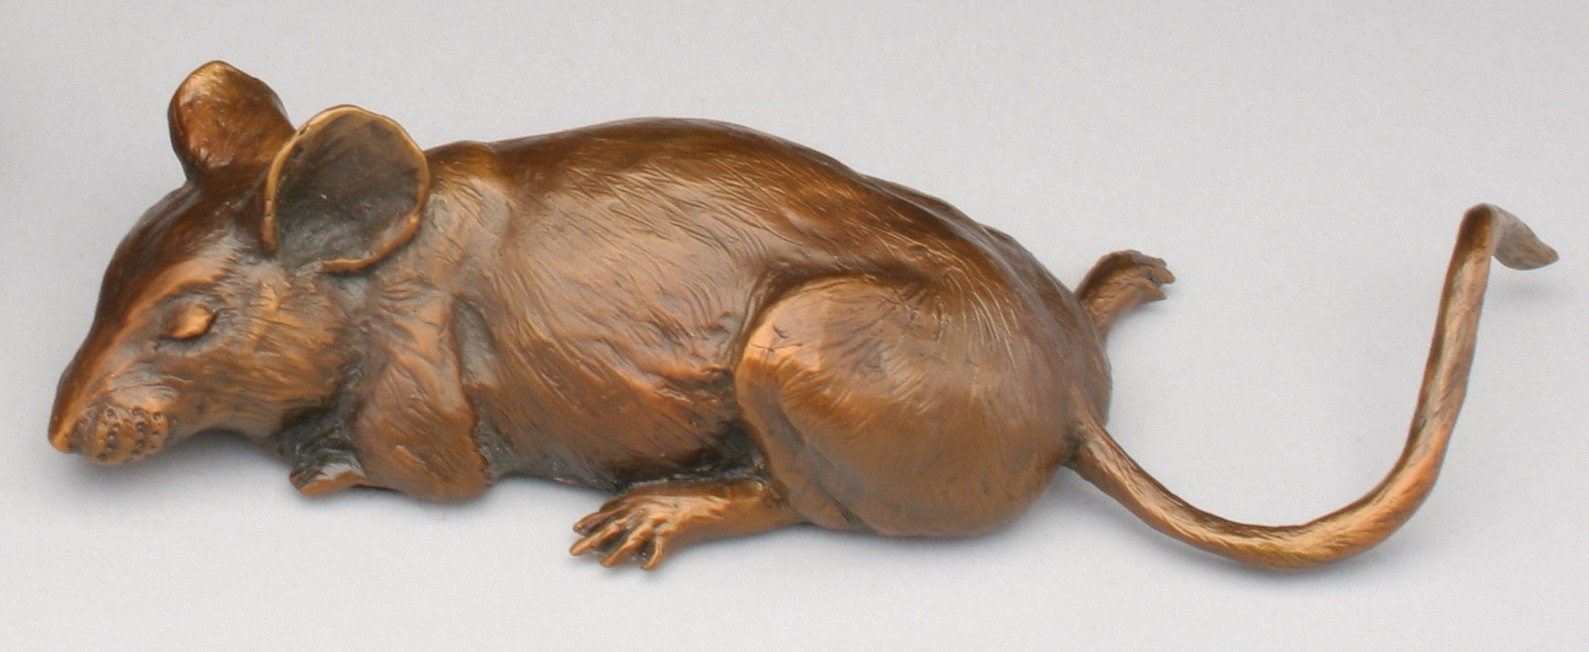 Full Tummy - Diane Mason - Sleeping Mouse